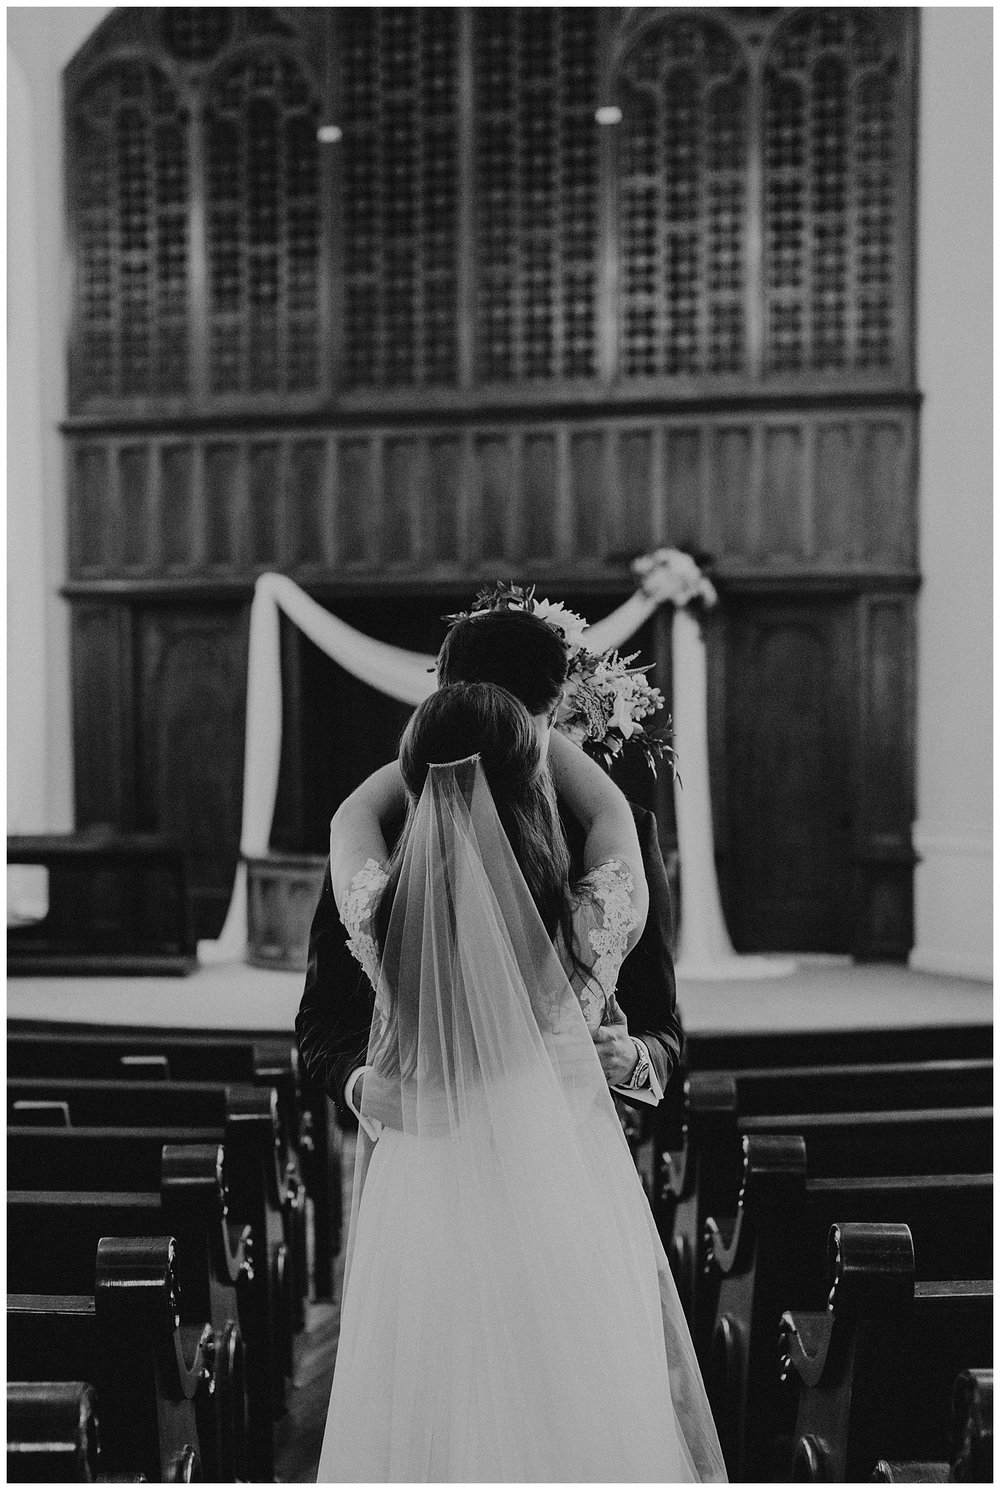 Madalynn Young Photography | Sarah Catherine + Will | Bridge Street Gallery and Loft | Atlanta Wedding Photographer_0148.jpg